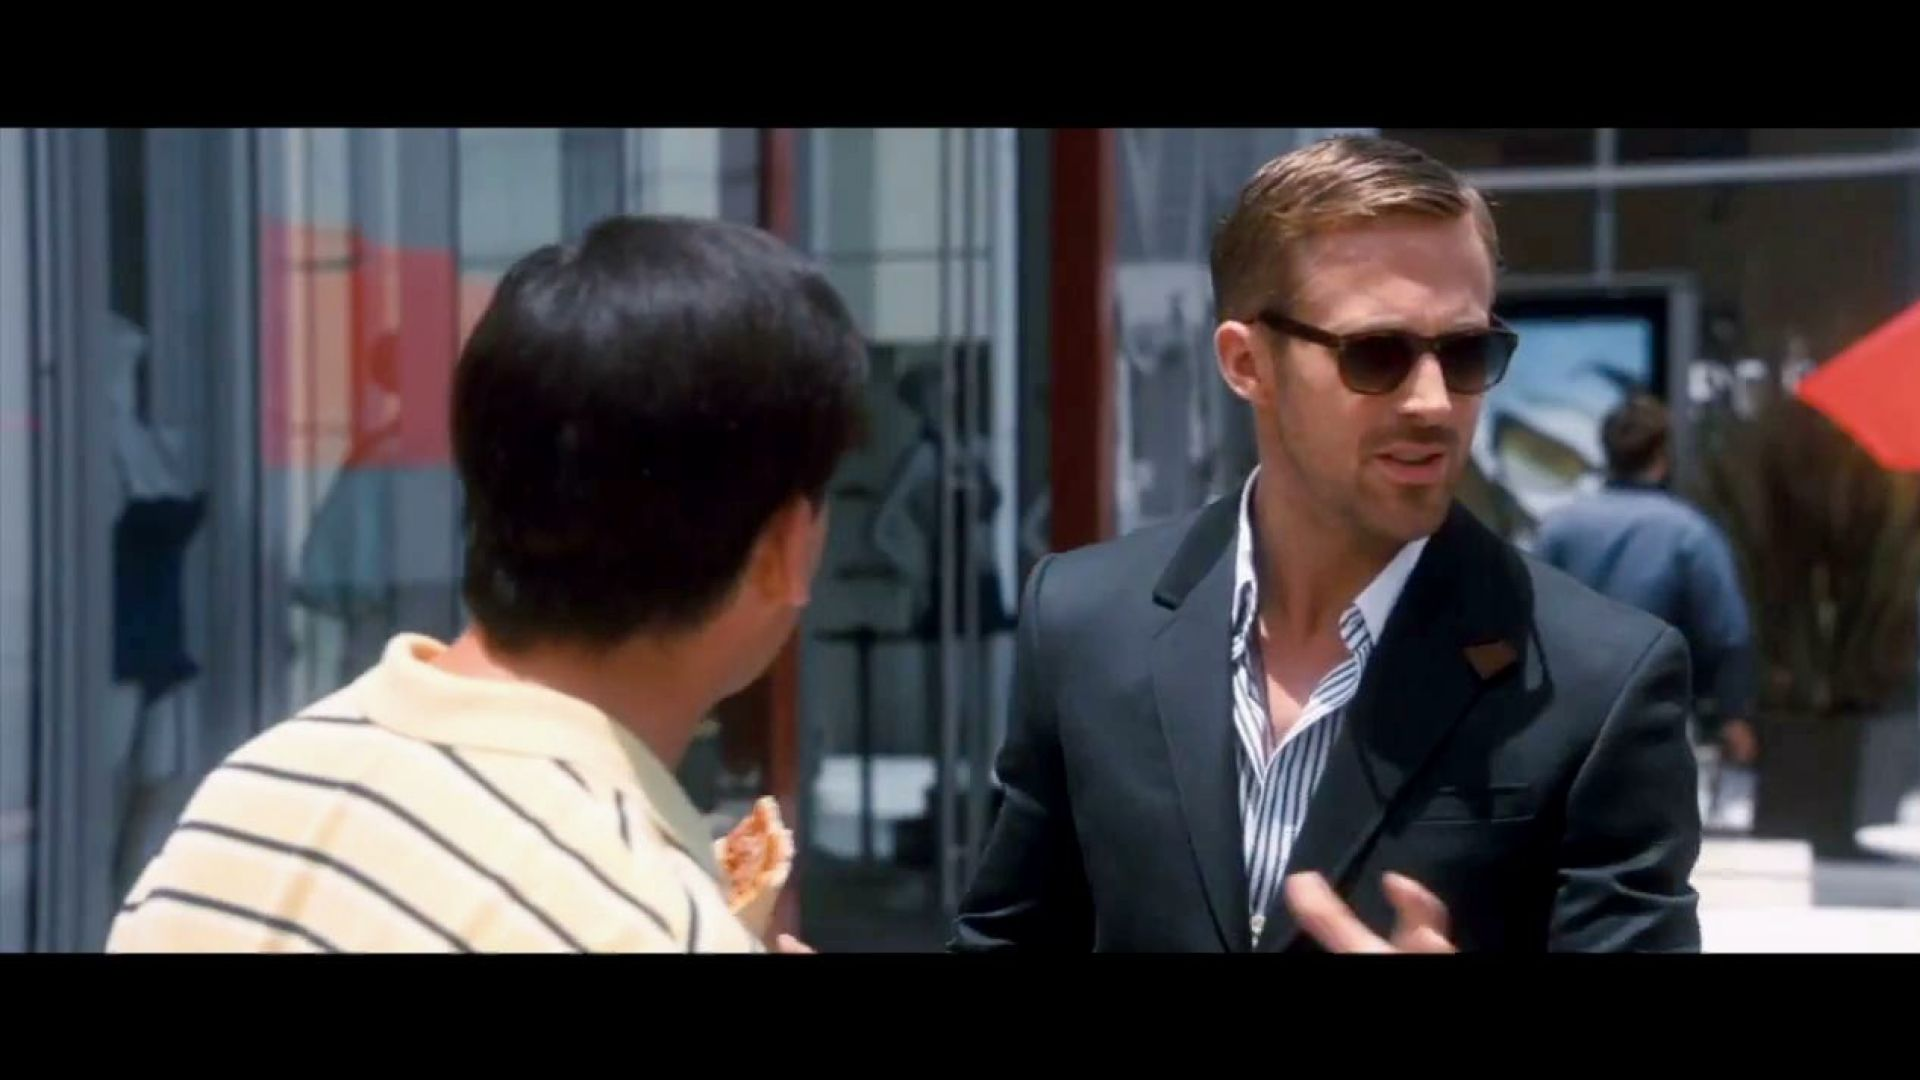 Are you Steve Jobs? Crazy, Stupid, Love